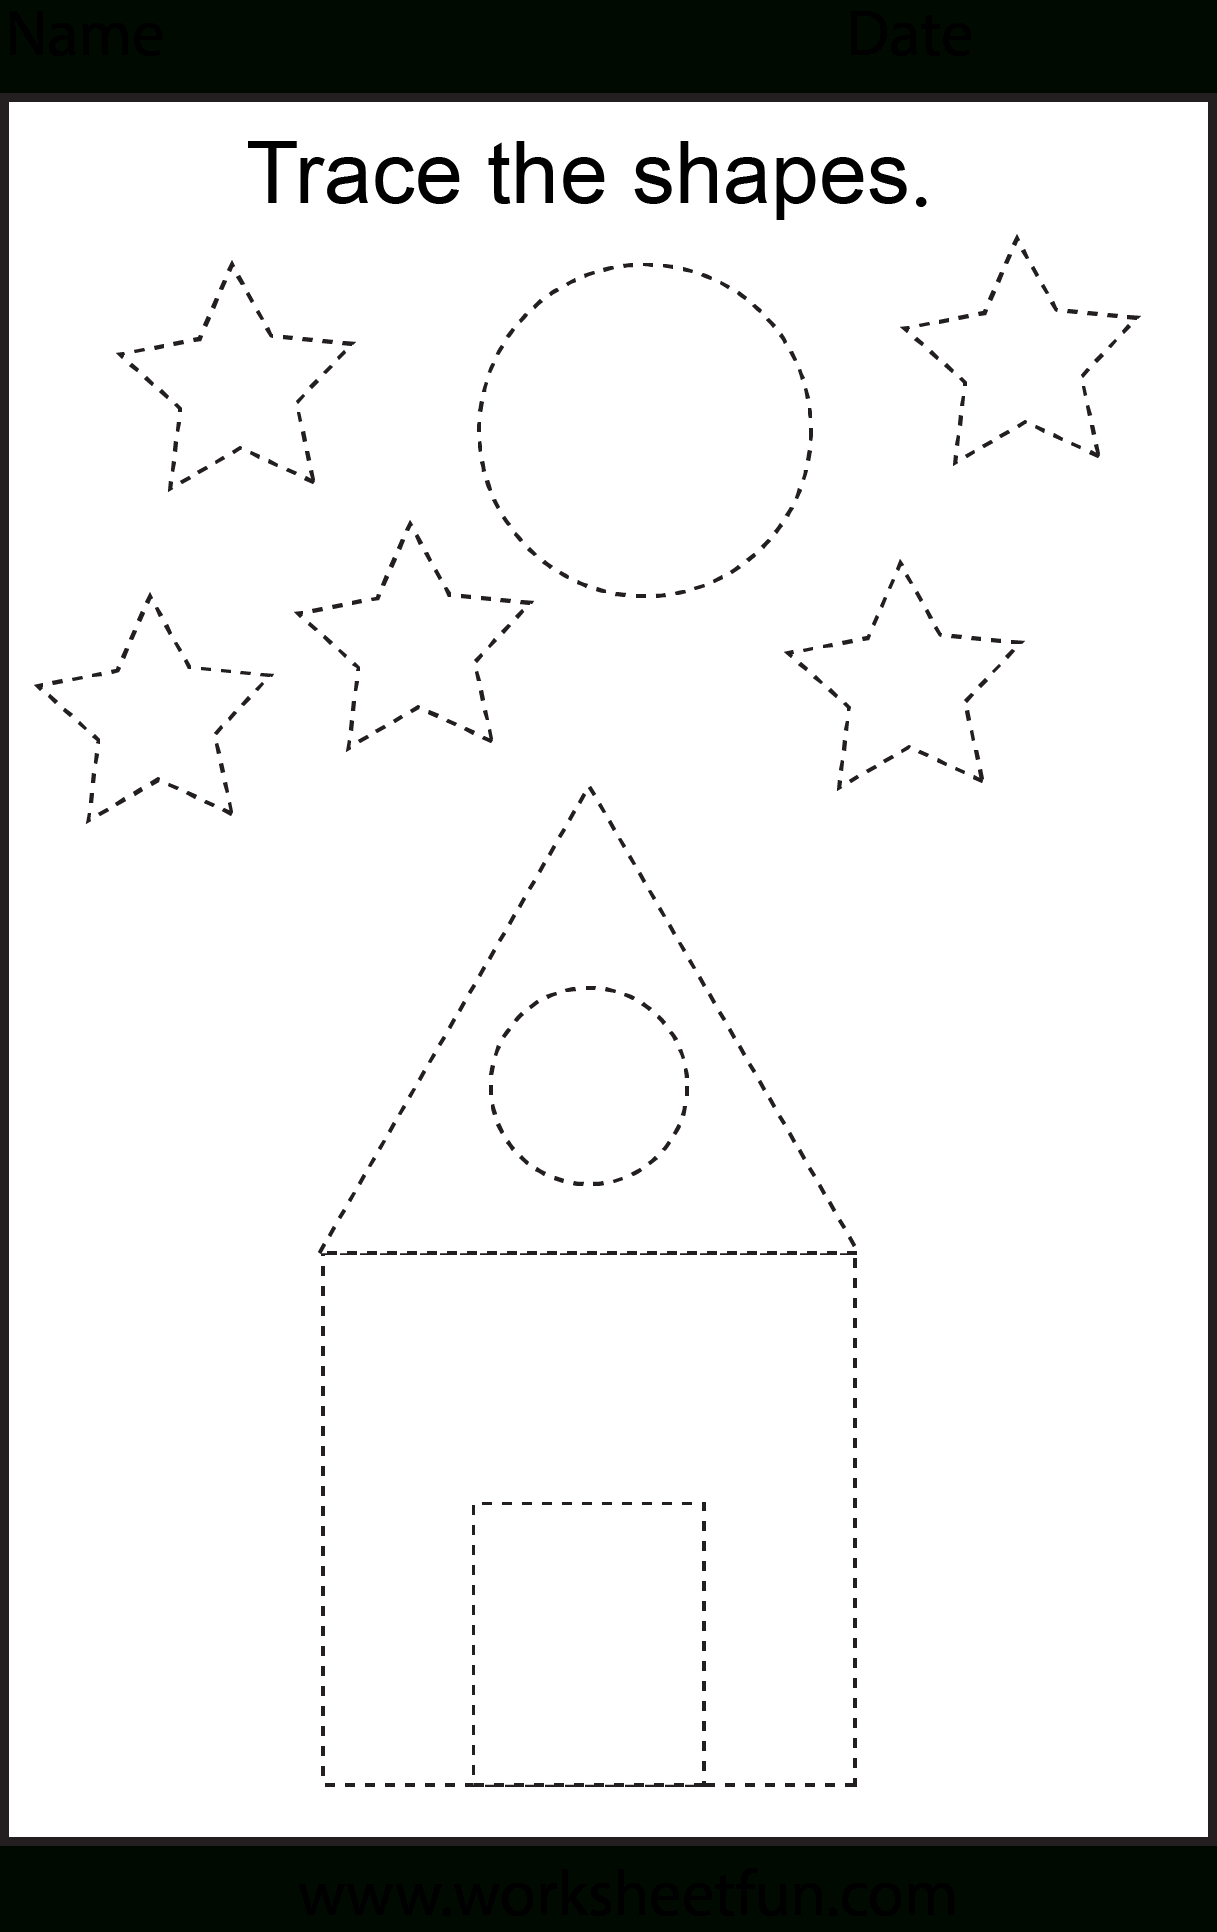 Free Printable Preschool Worksheets - This One Is Trace The Shapes - Free Printable Hoy Sheets